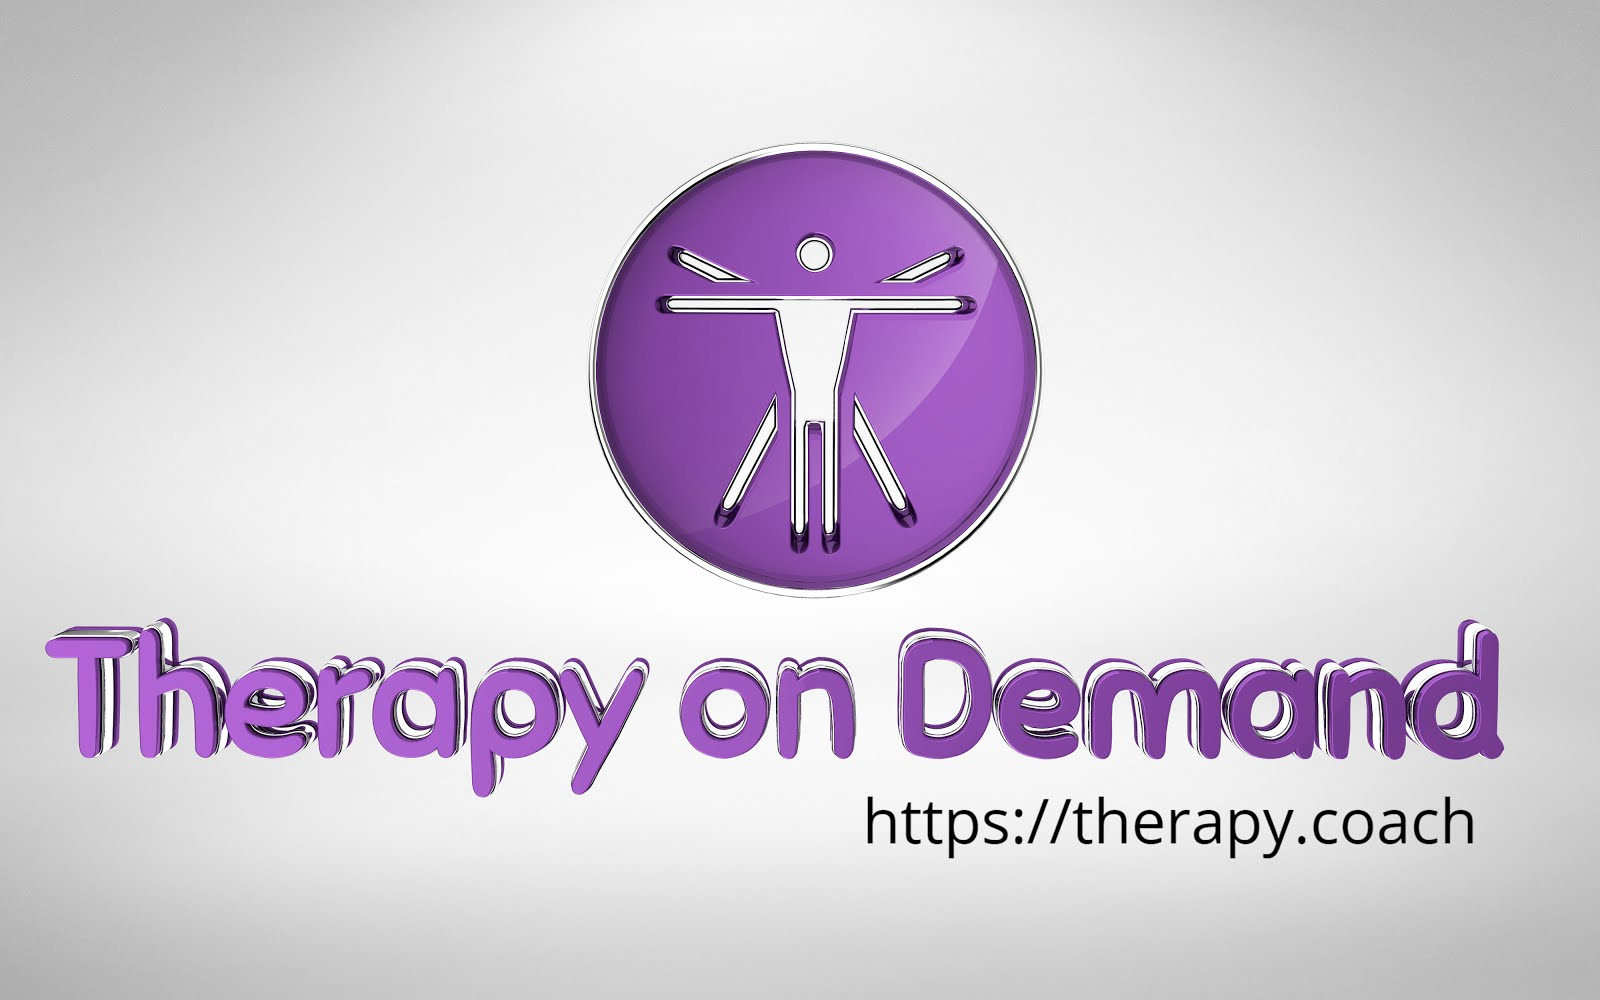 Therapy on Demand